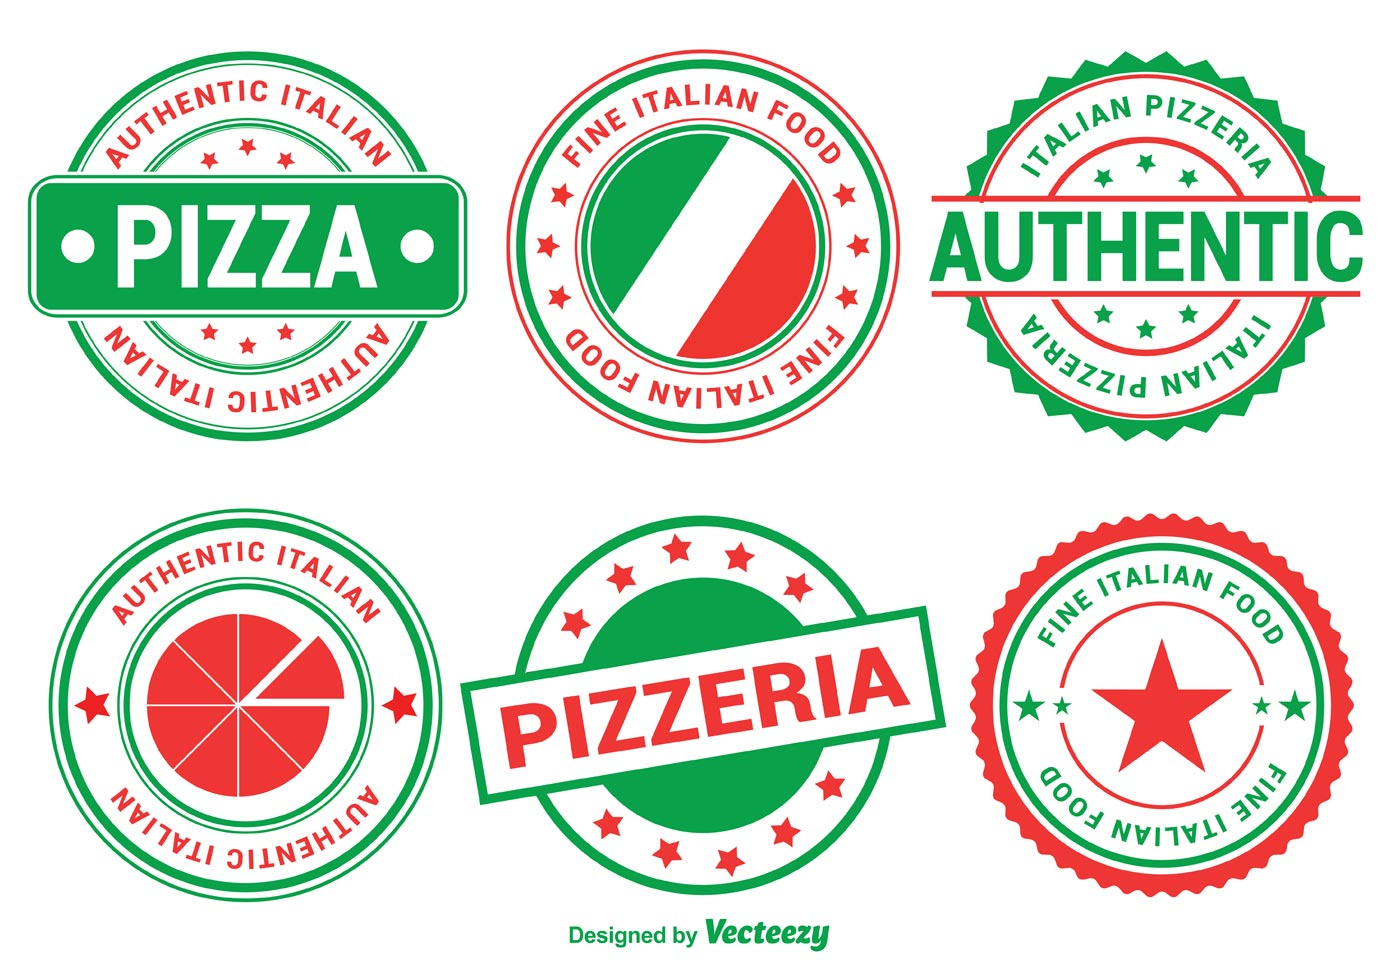 Pizza logo clipart svg library download Pizza Vector | Free Vector Art at Vecteezy! svg library download